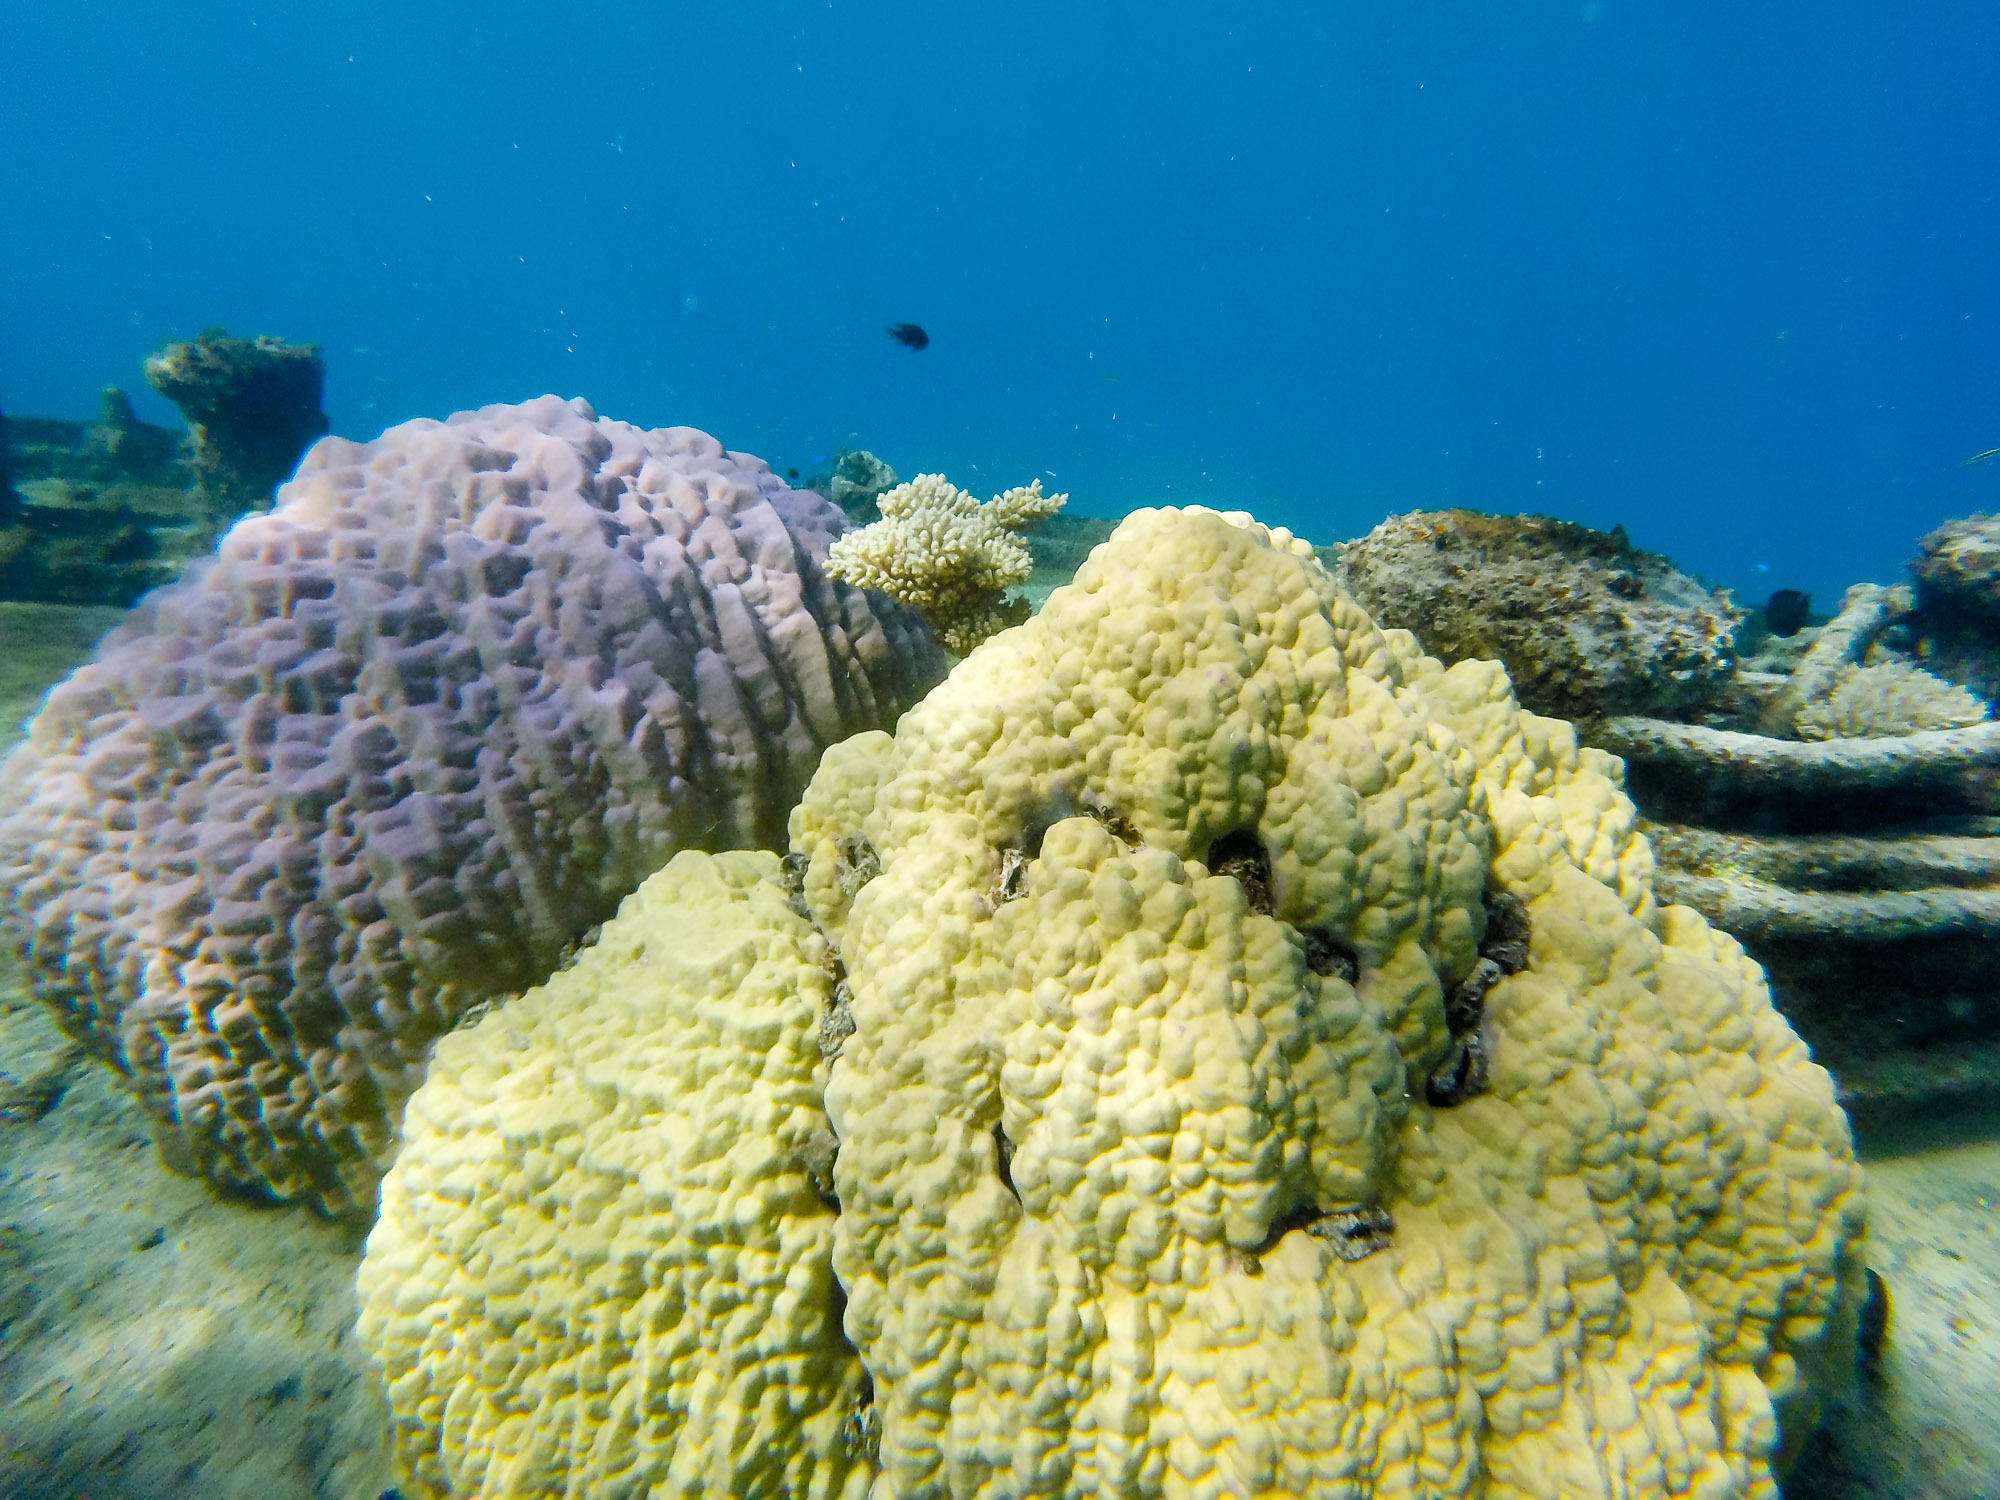 Coral growth on the stern of the shipwreck